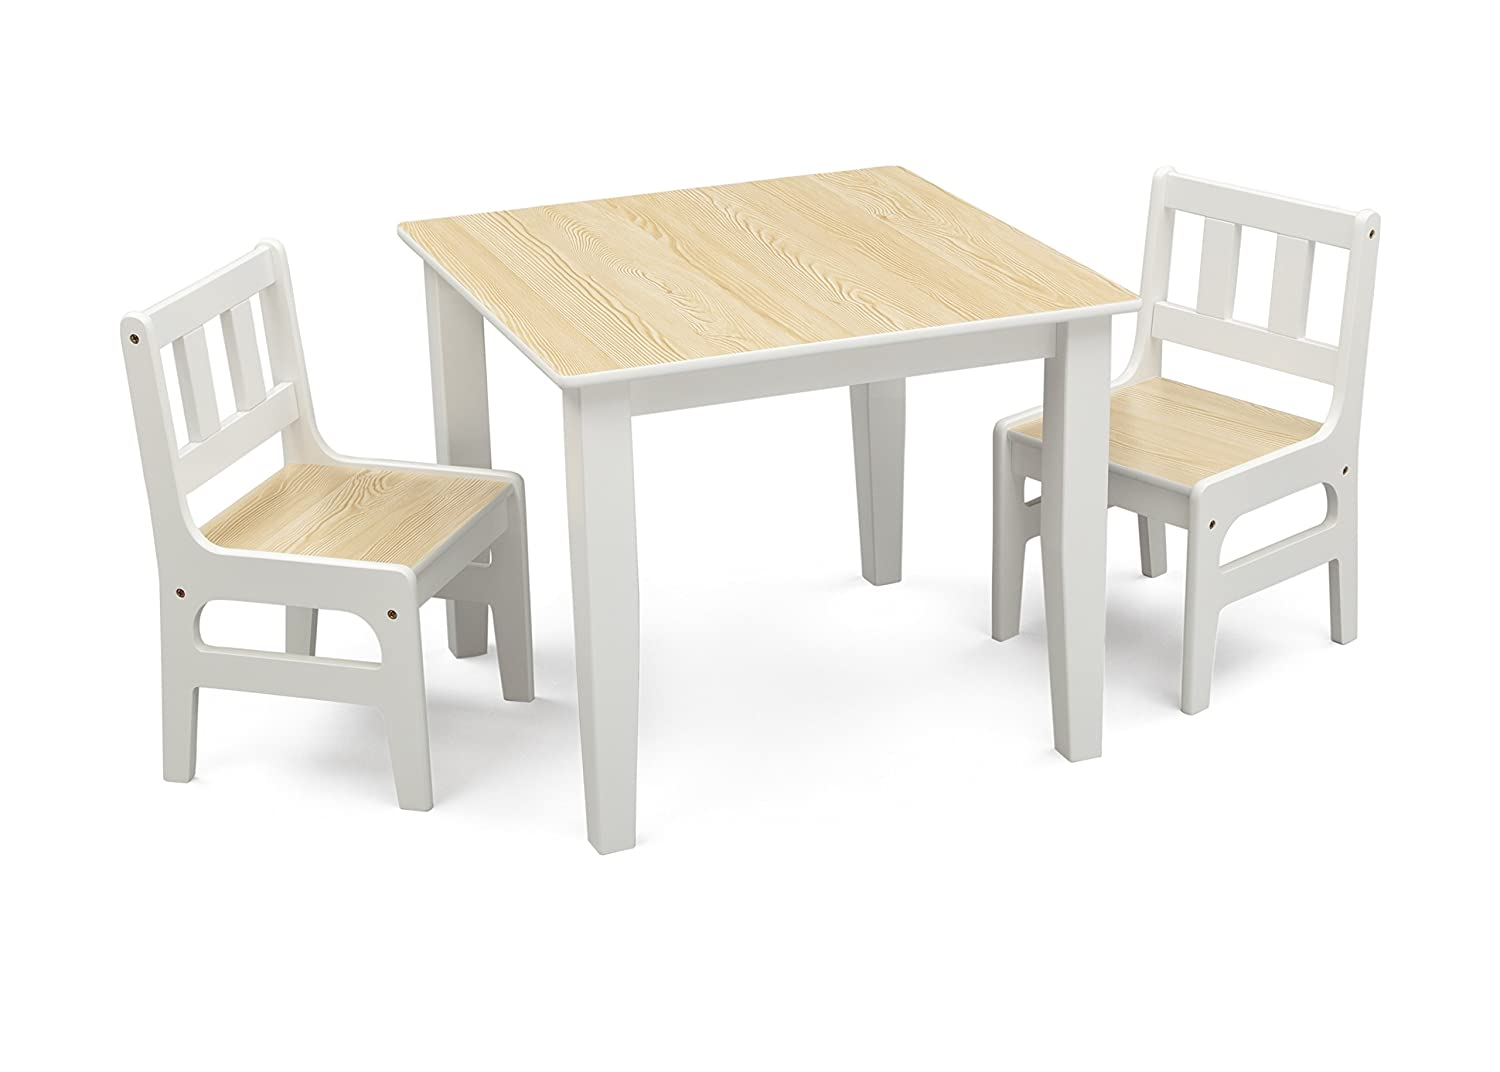 Delta Children Wooden Children's Table and Chair Set (Natural and White) TT89512GN